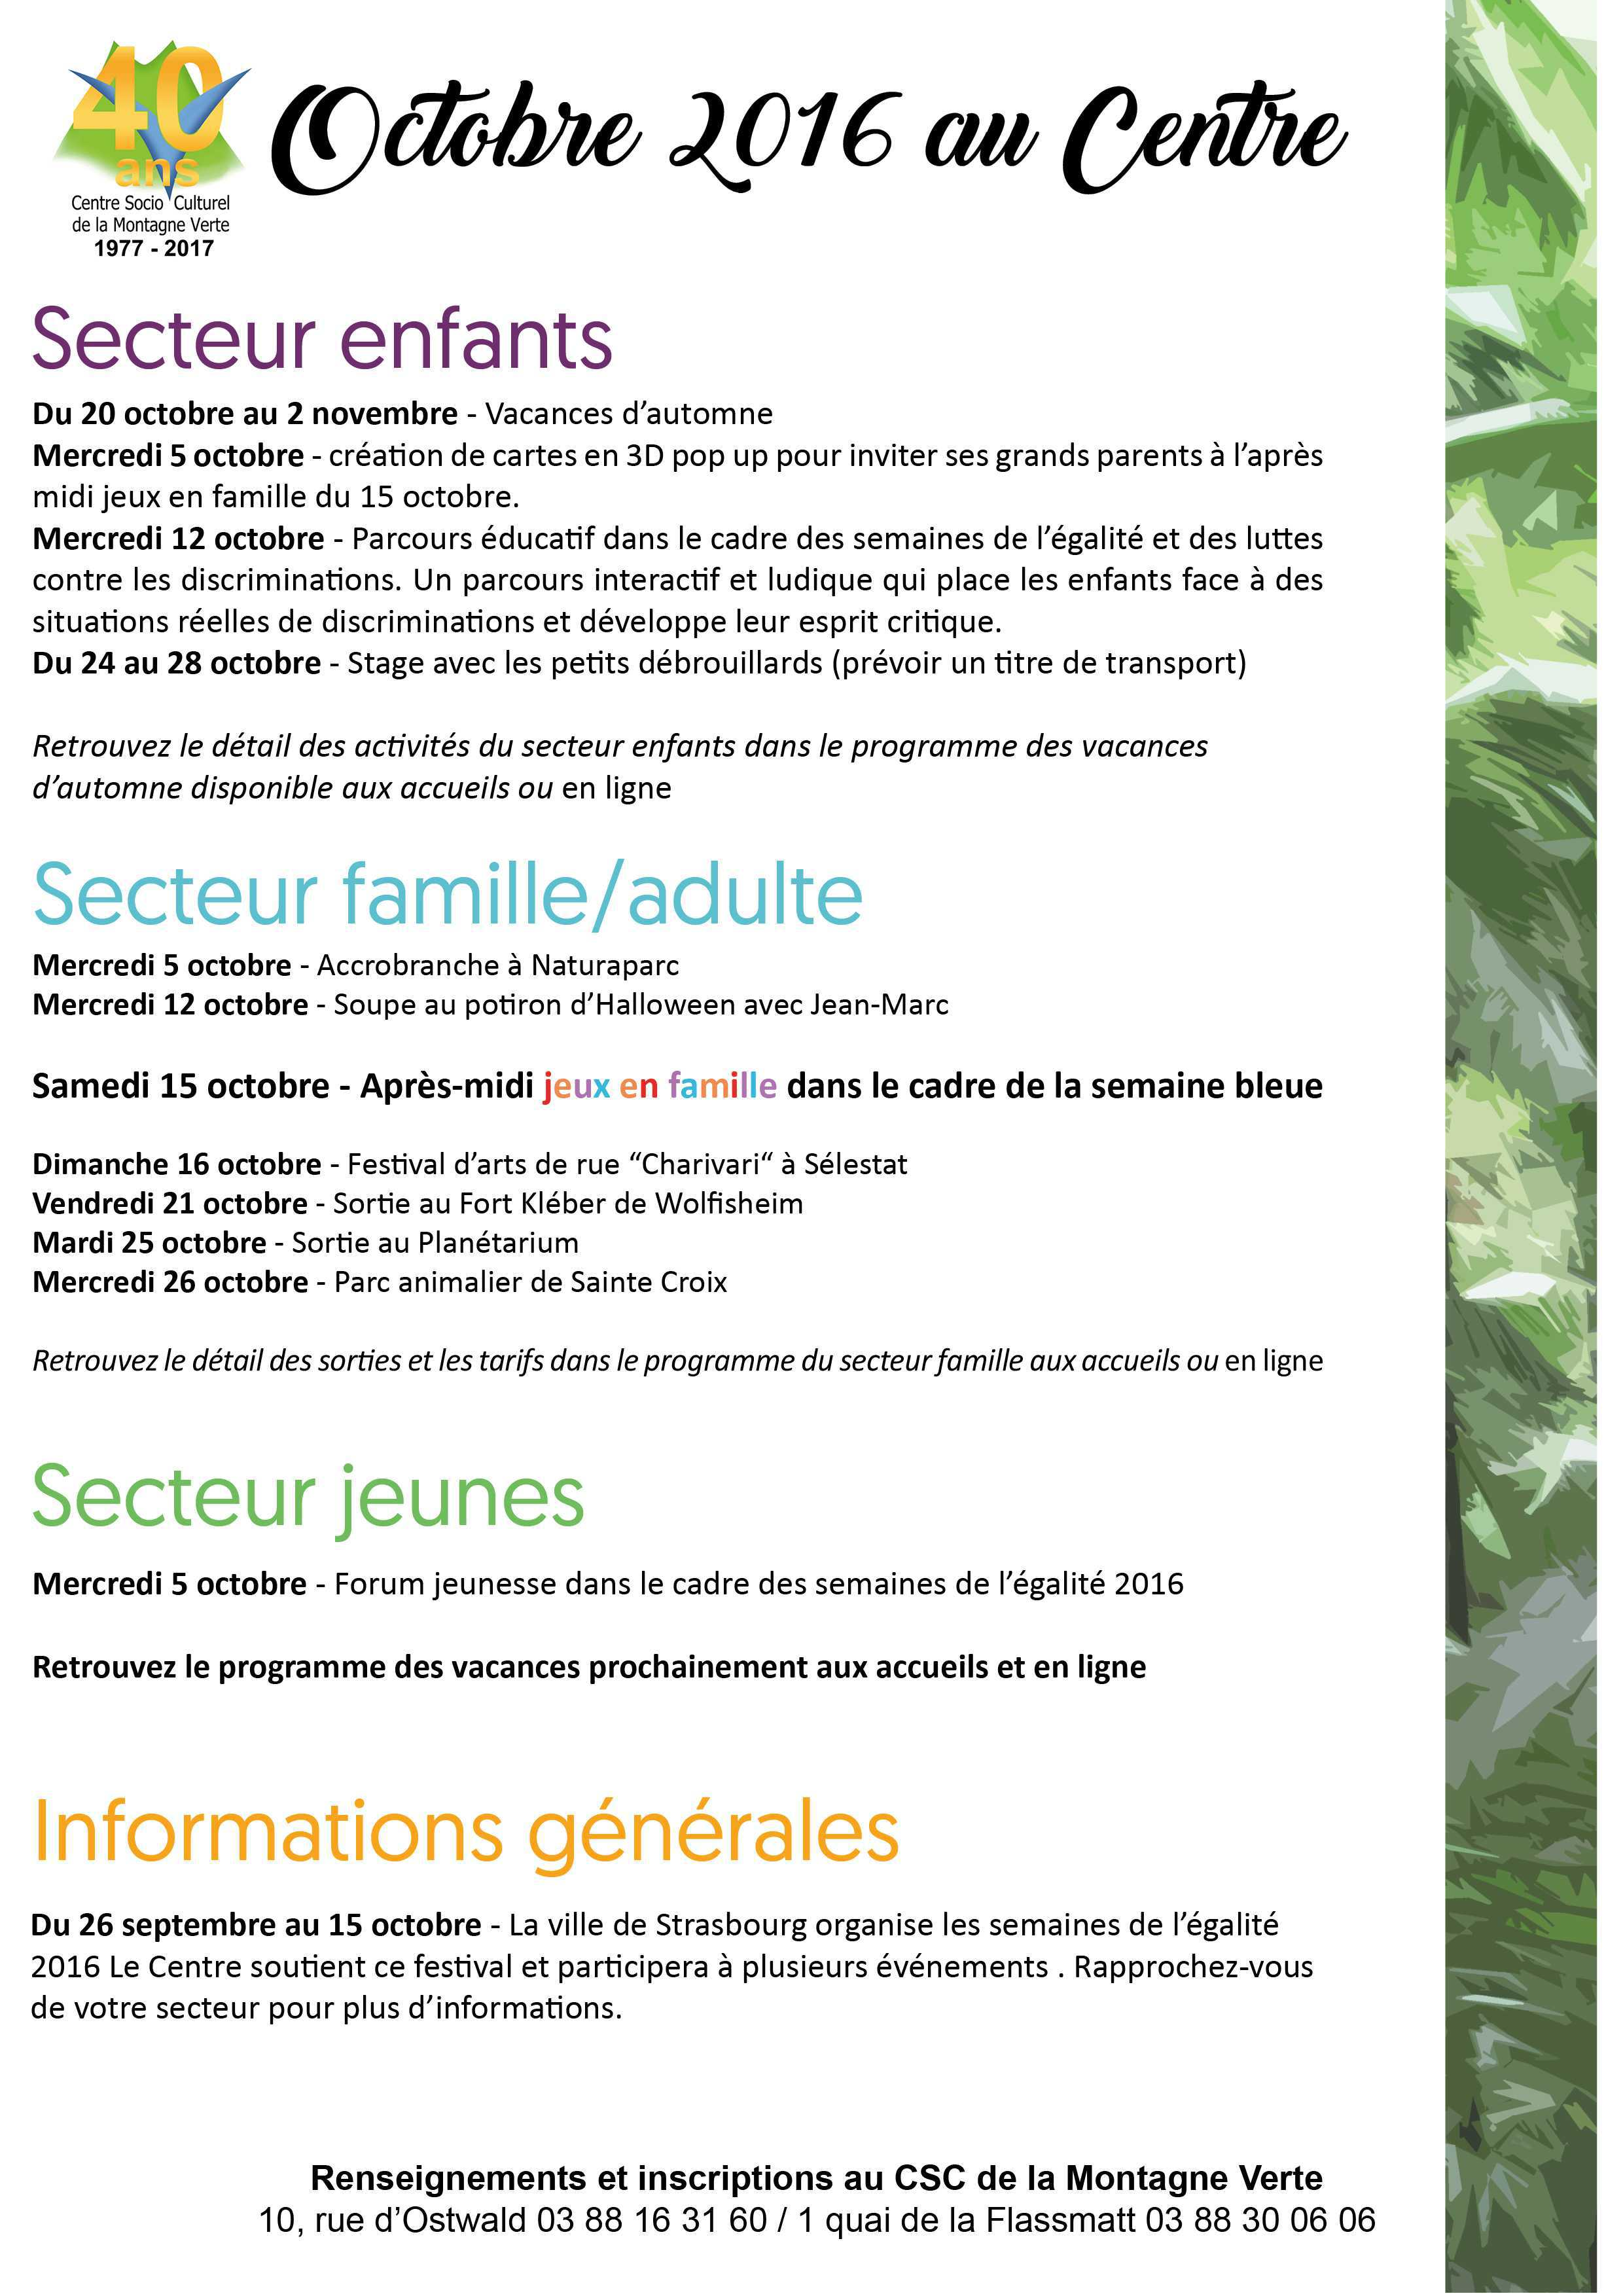 newsletter-octobre-16-web